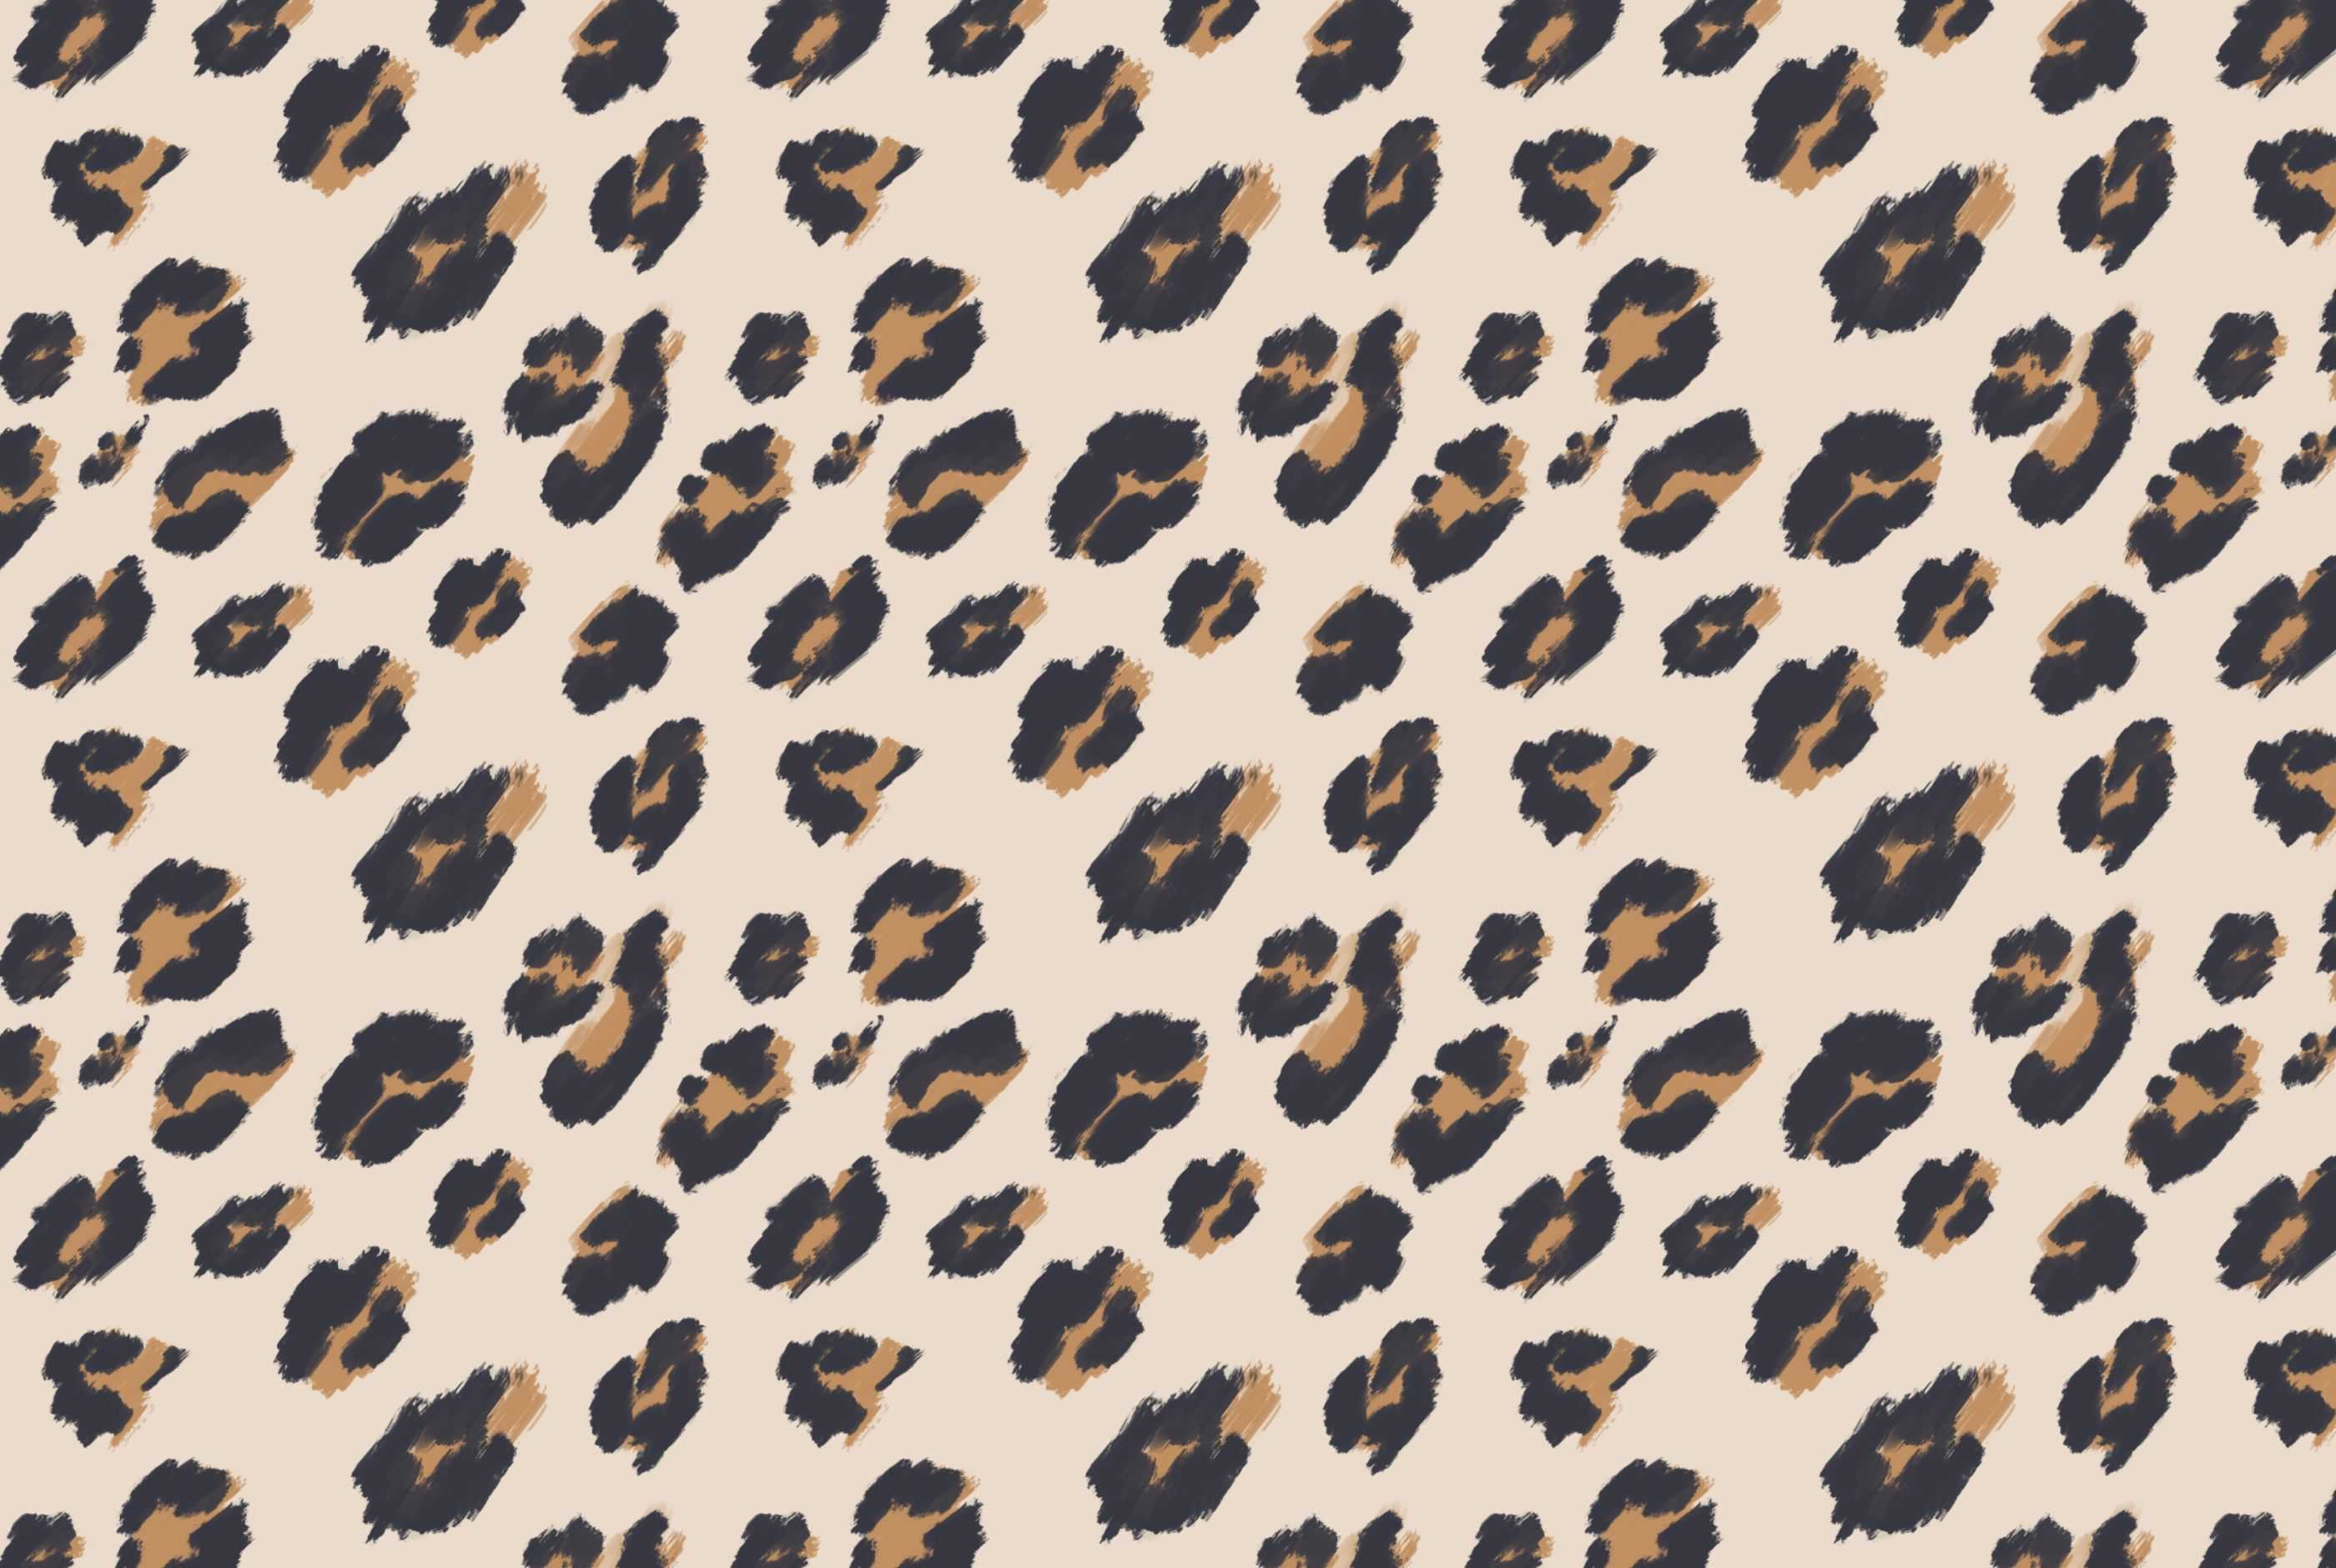 Cheetah Print Wallpaper Desktop 1